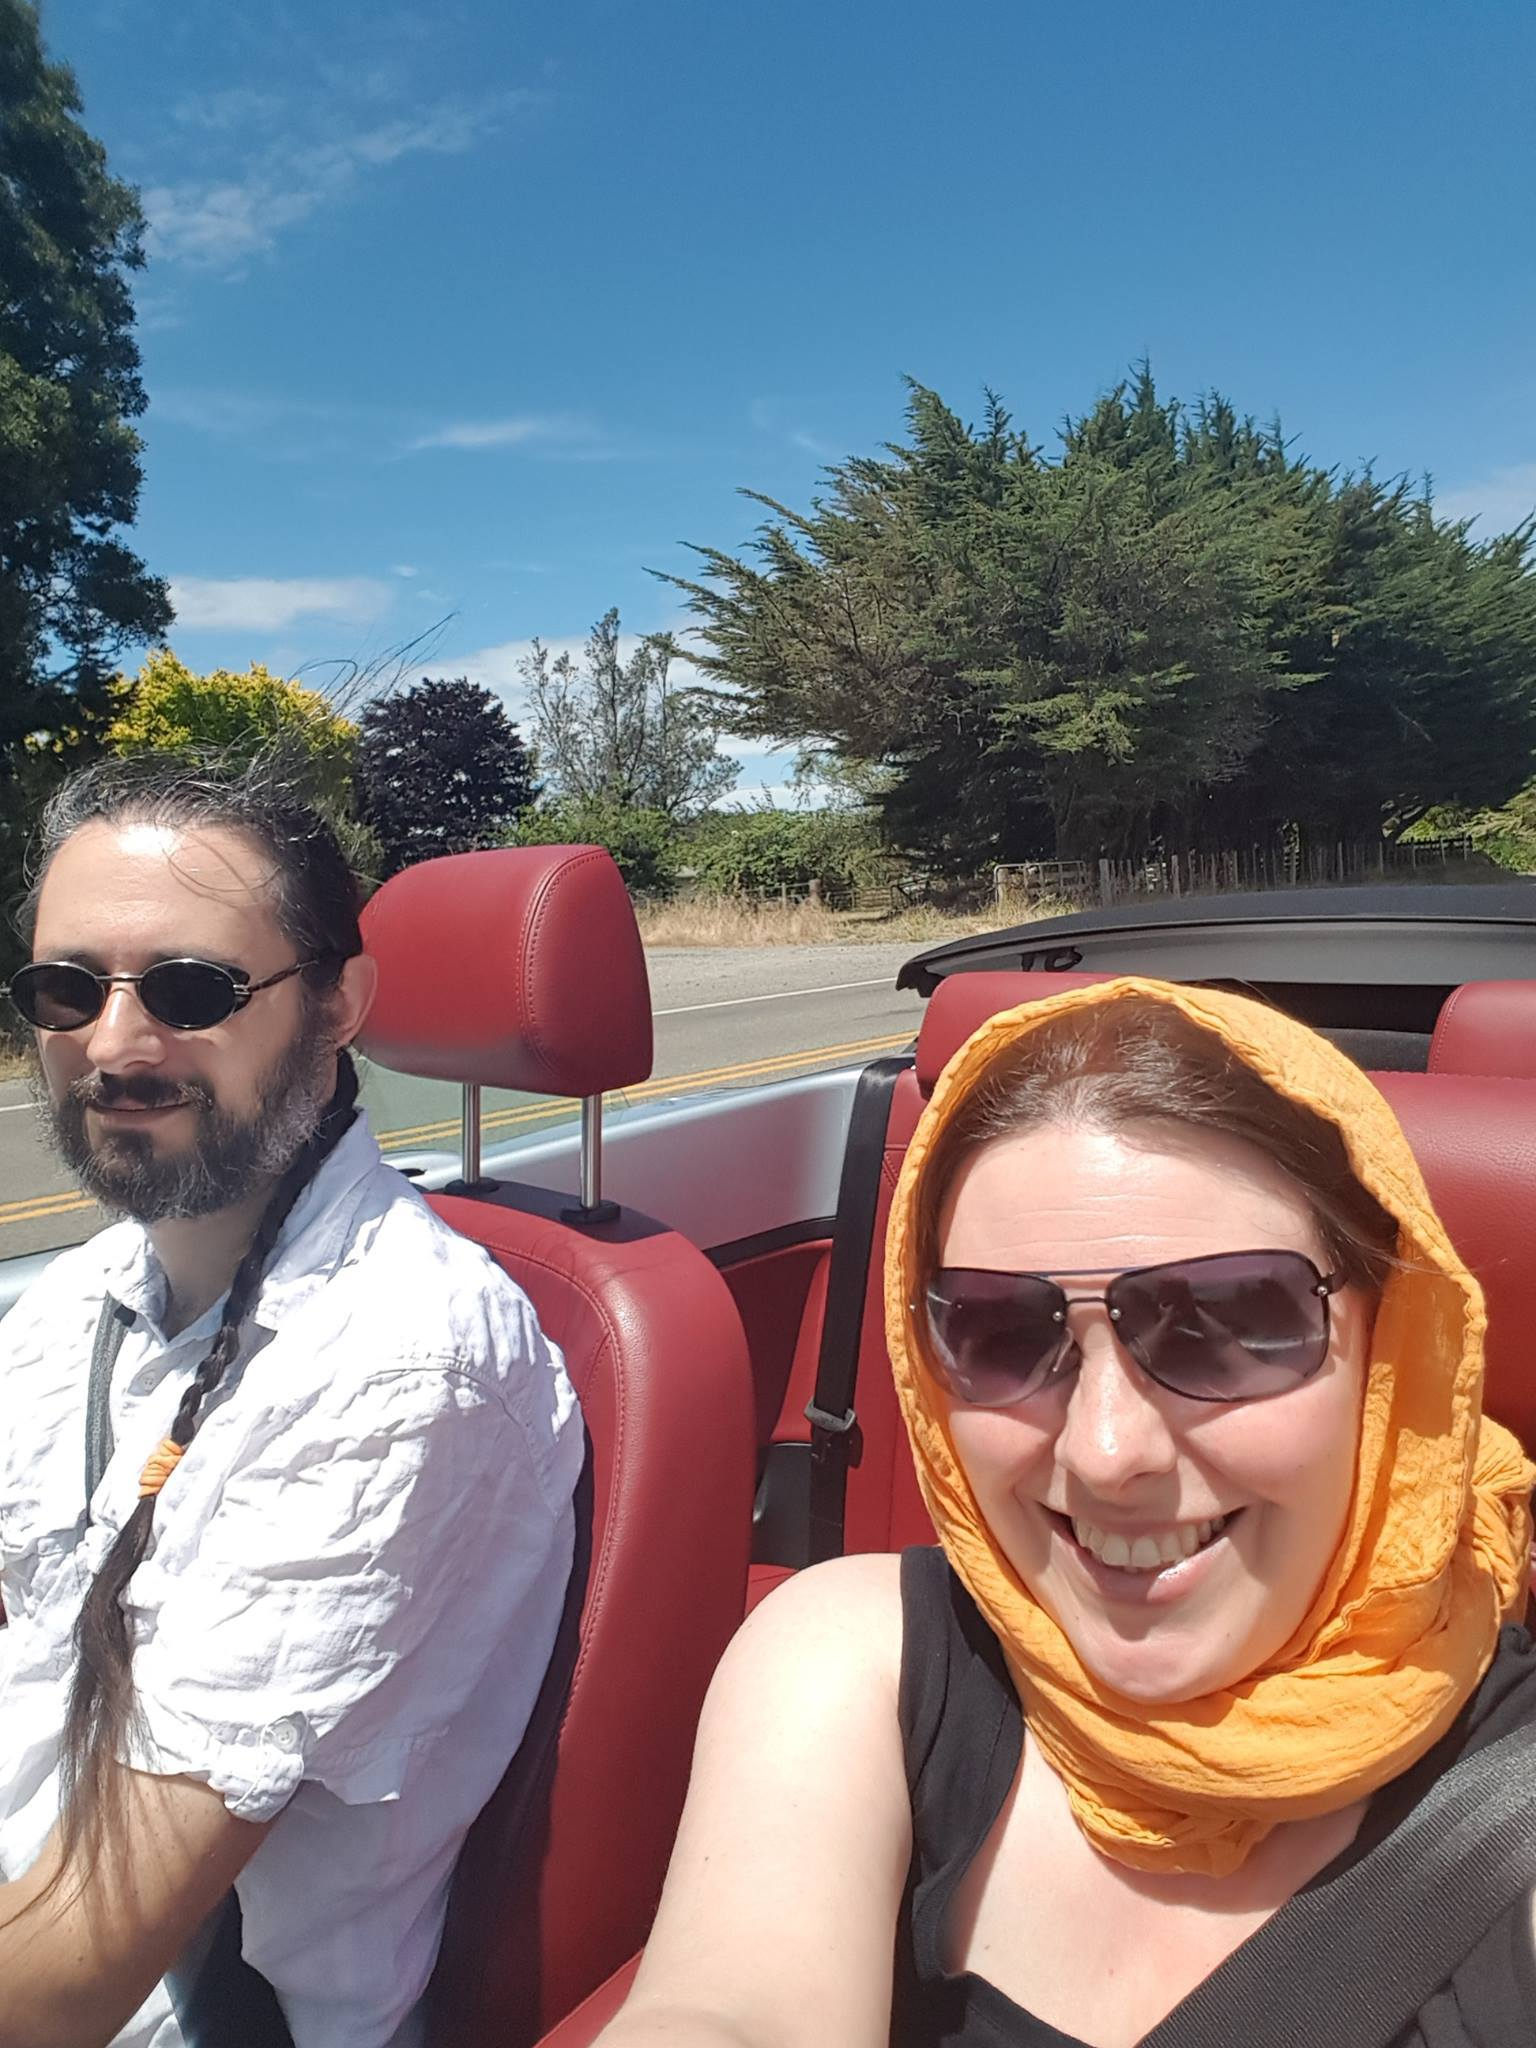 Terry and Liz in a convertable car, their hair flowing.